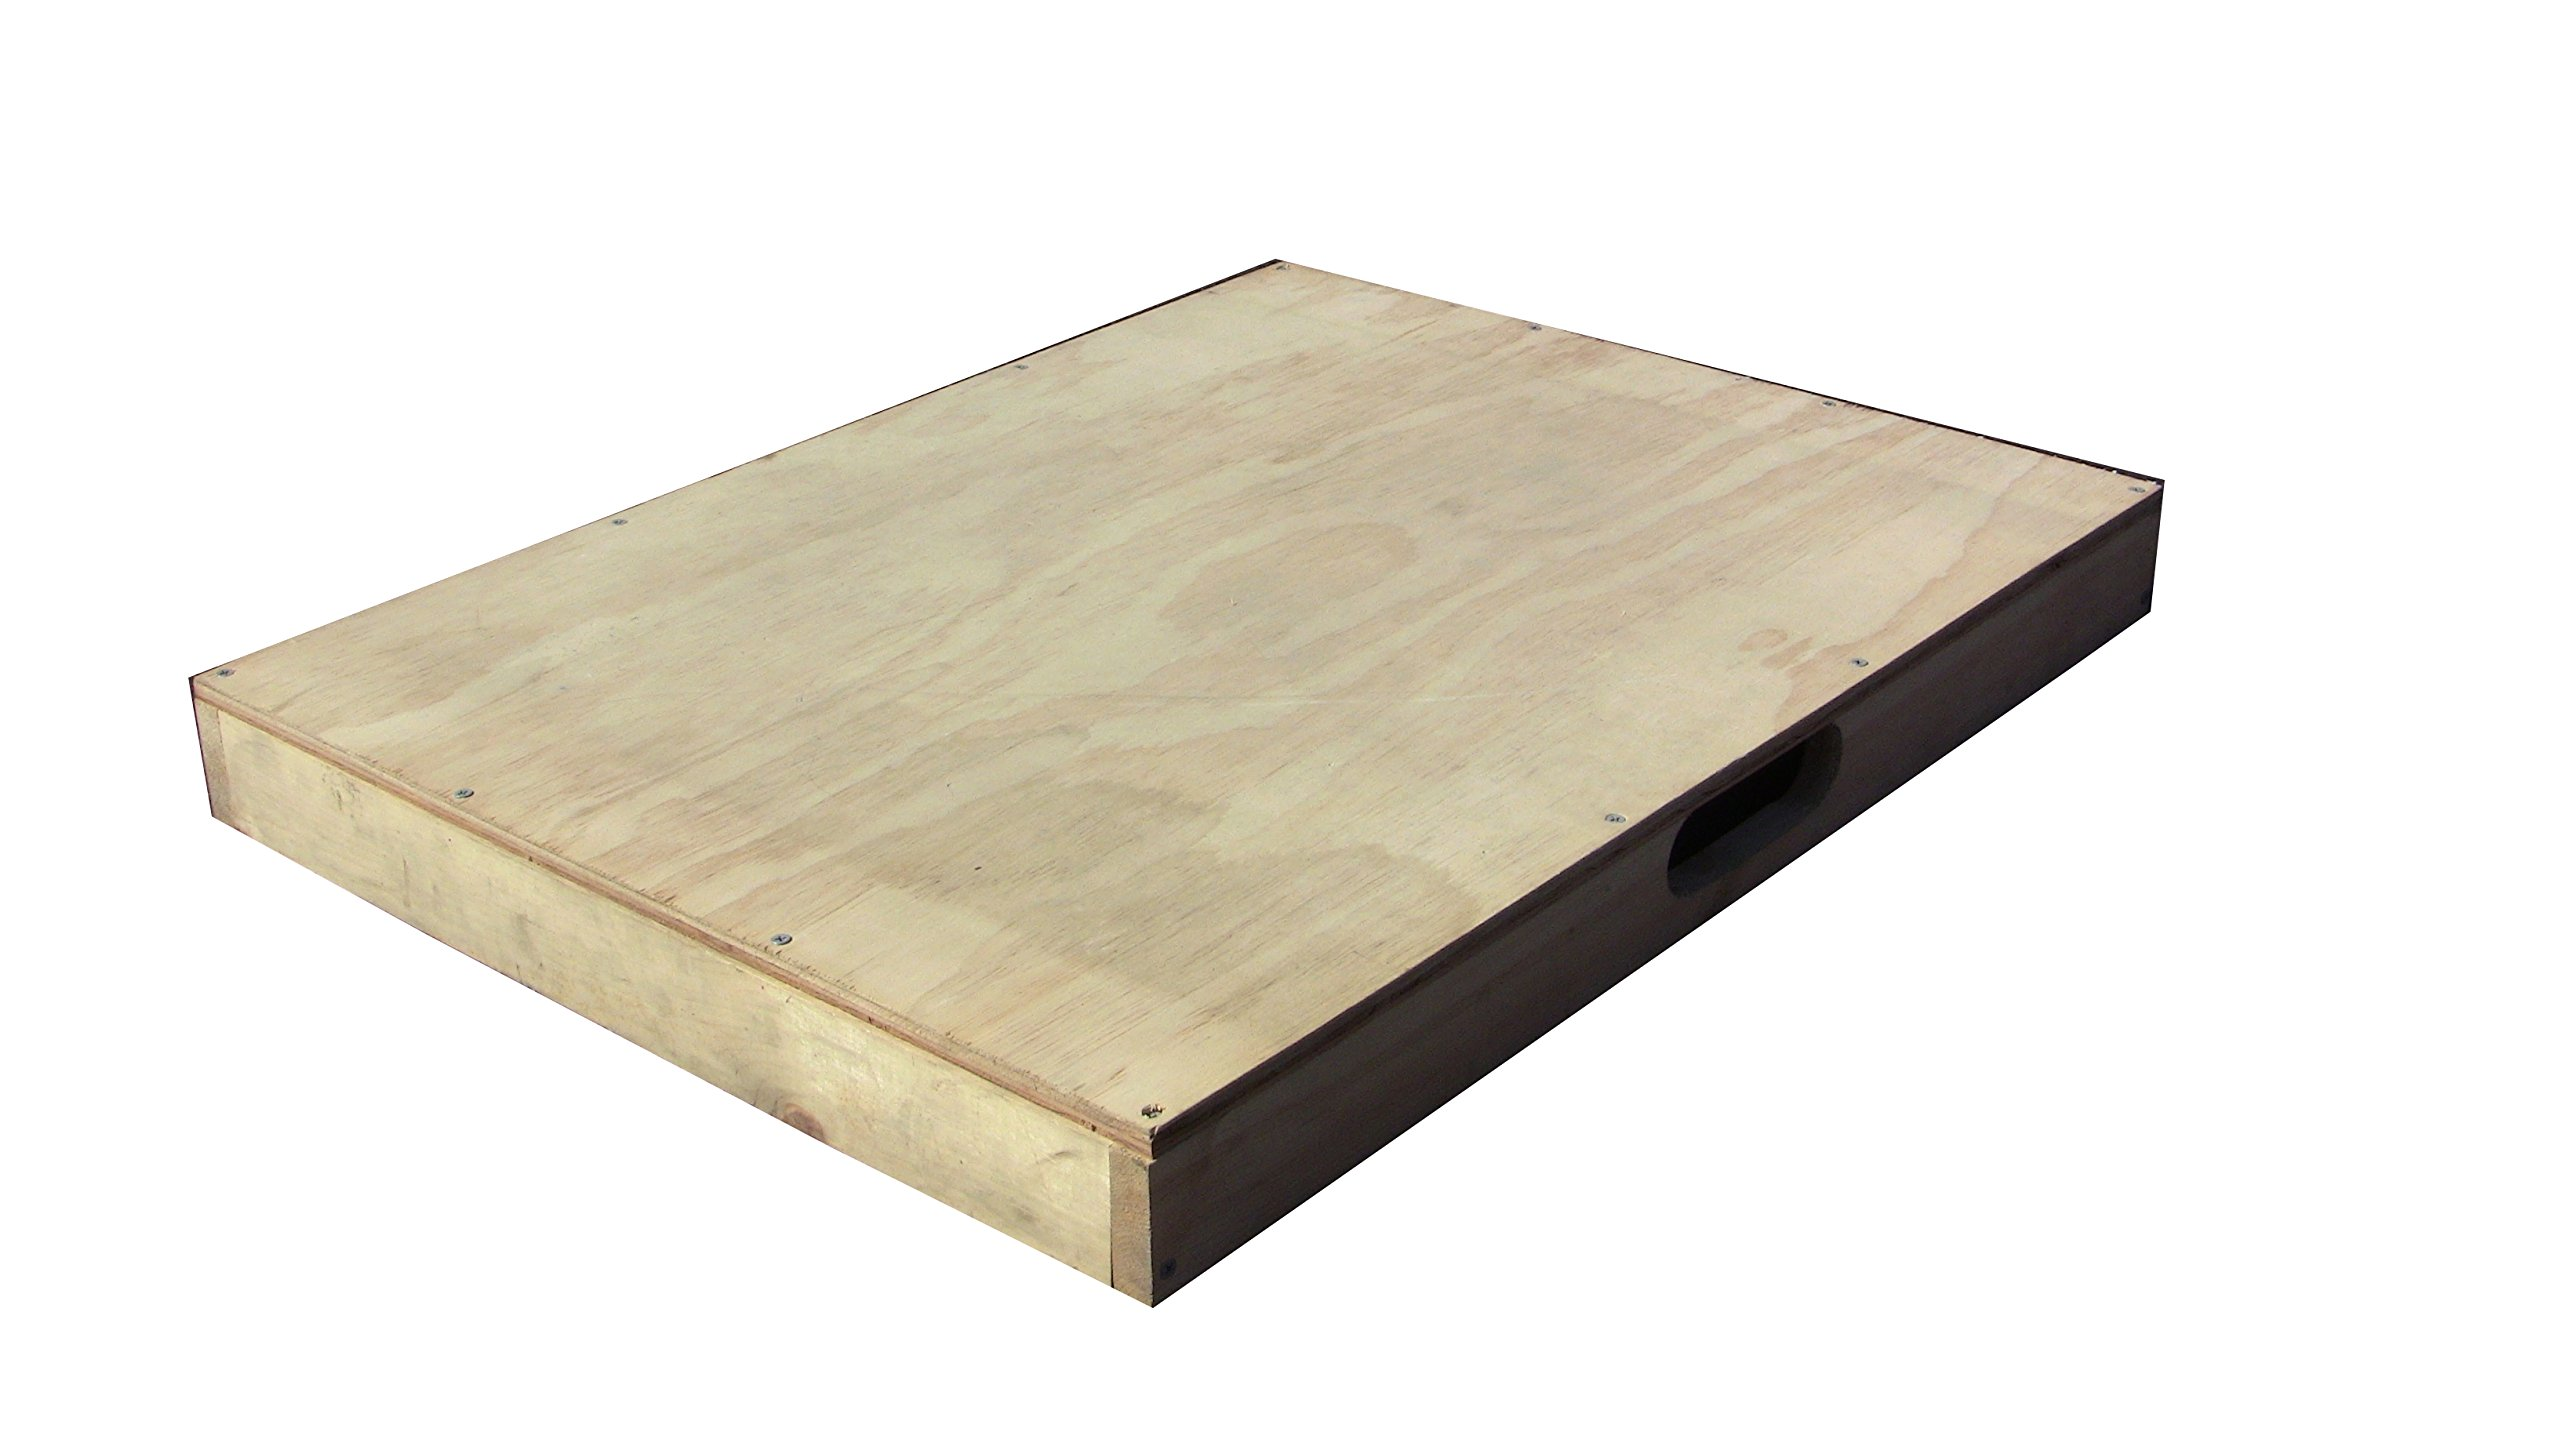 ASPS Dance Board Standard for Clogging Tap Flat Footing w/handle 3 x 24 x 32 in.